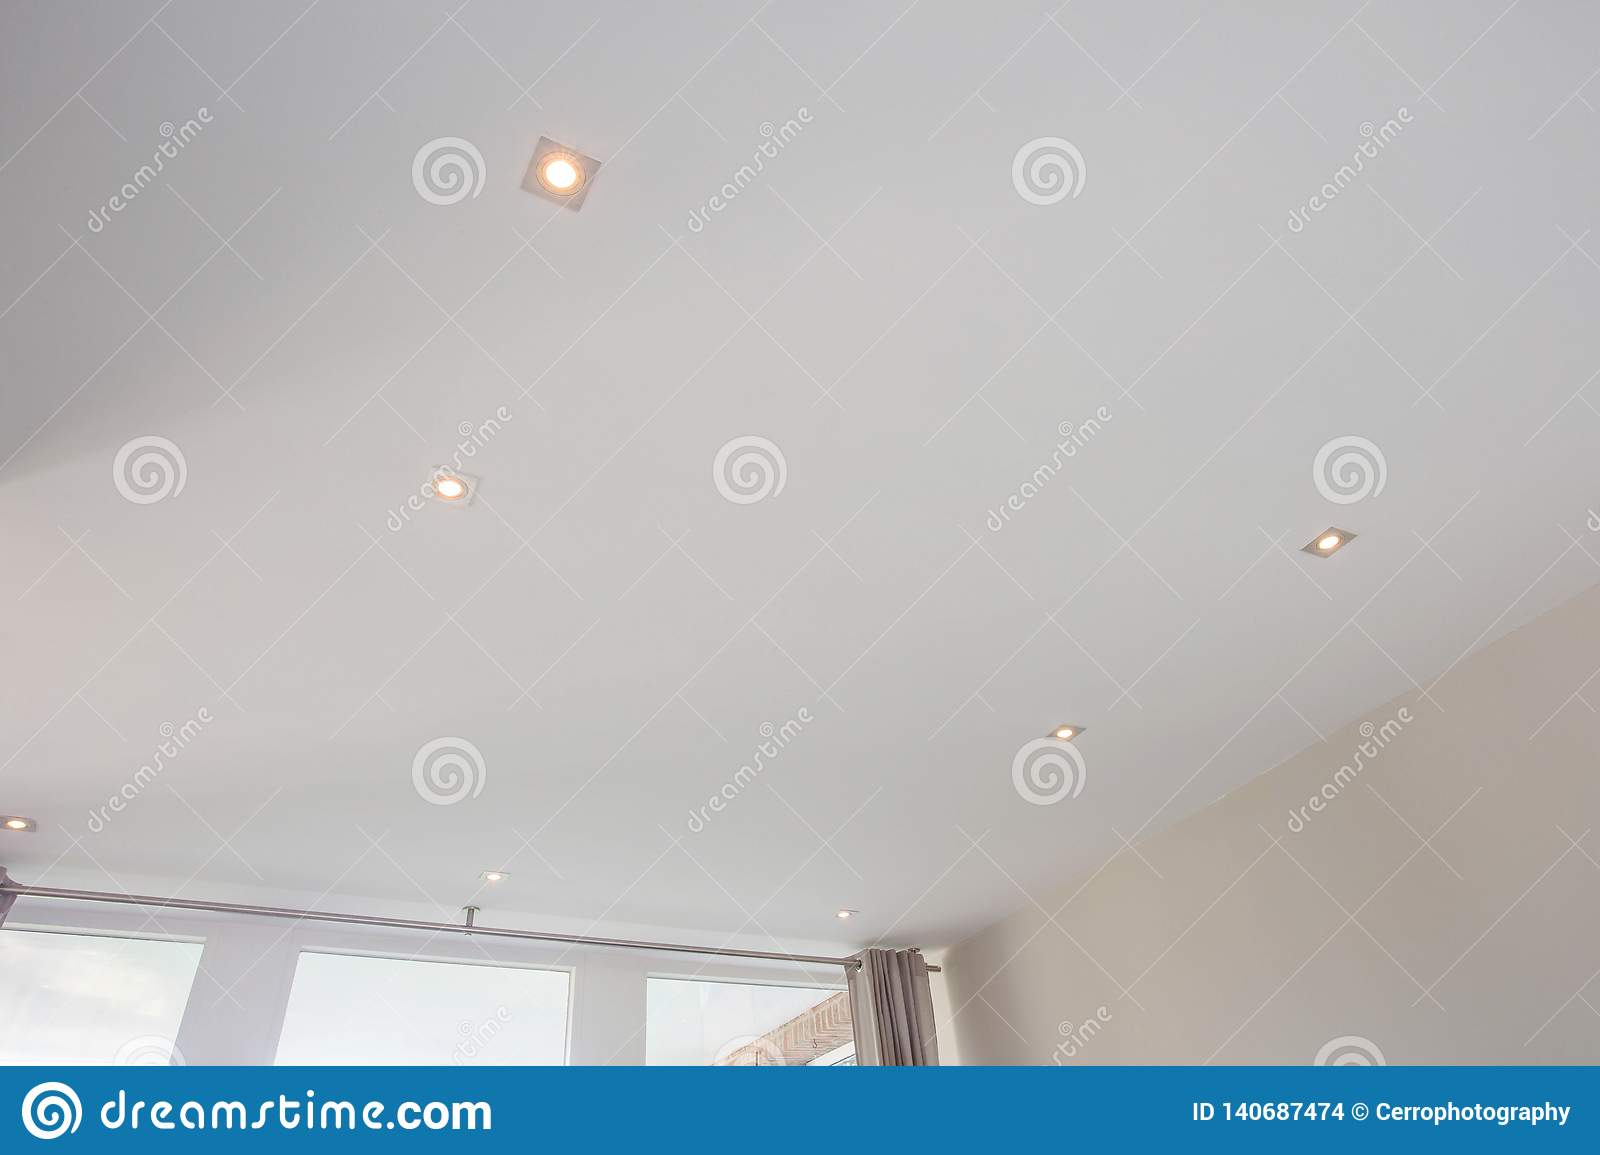 Living Room Ceiling Halogen Spots Modern Design Spot Light Stock Photo Image Of Empty Illuminated 140687474